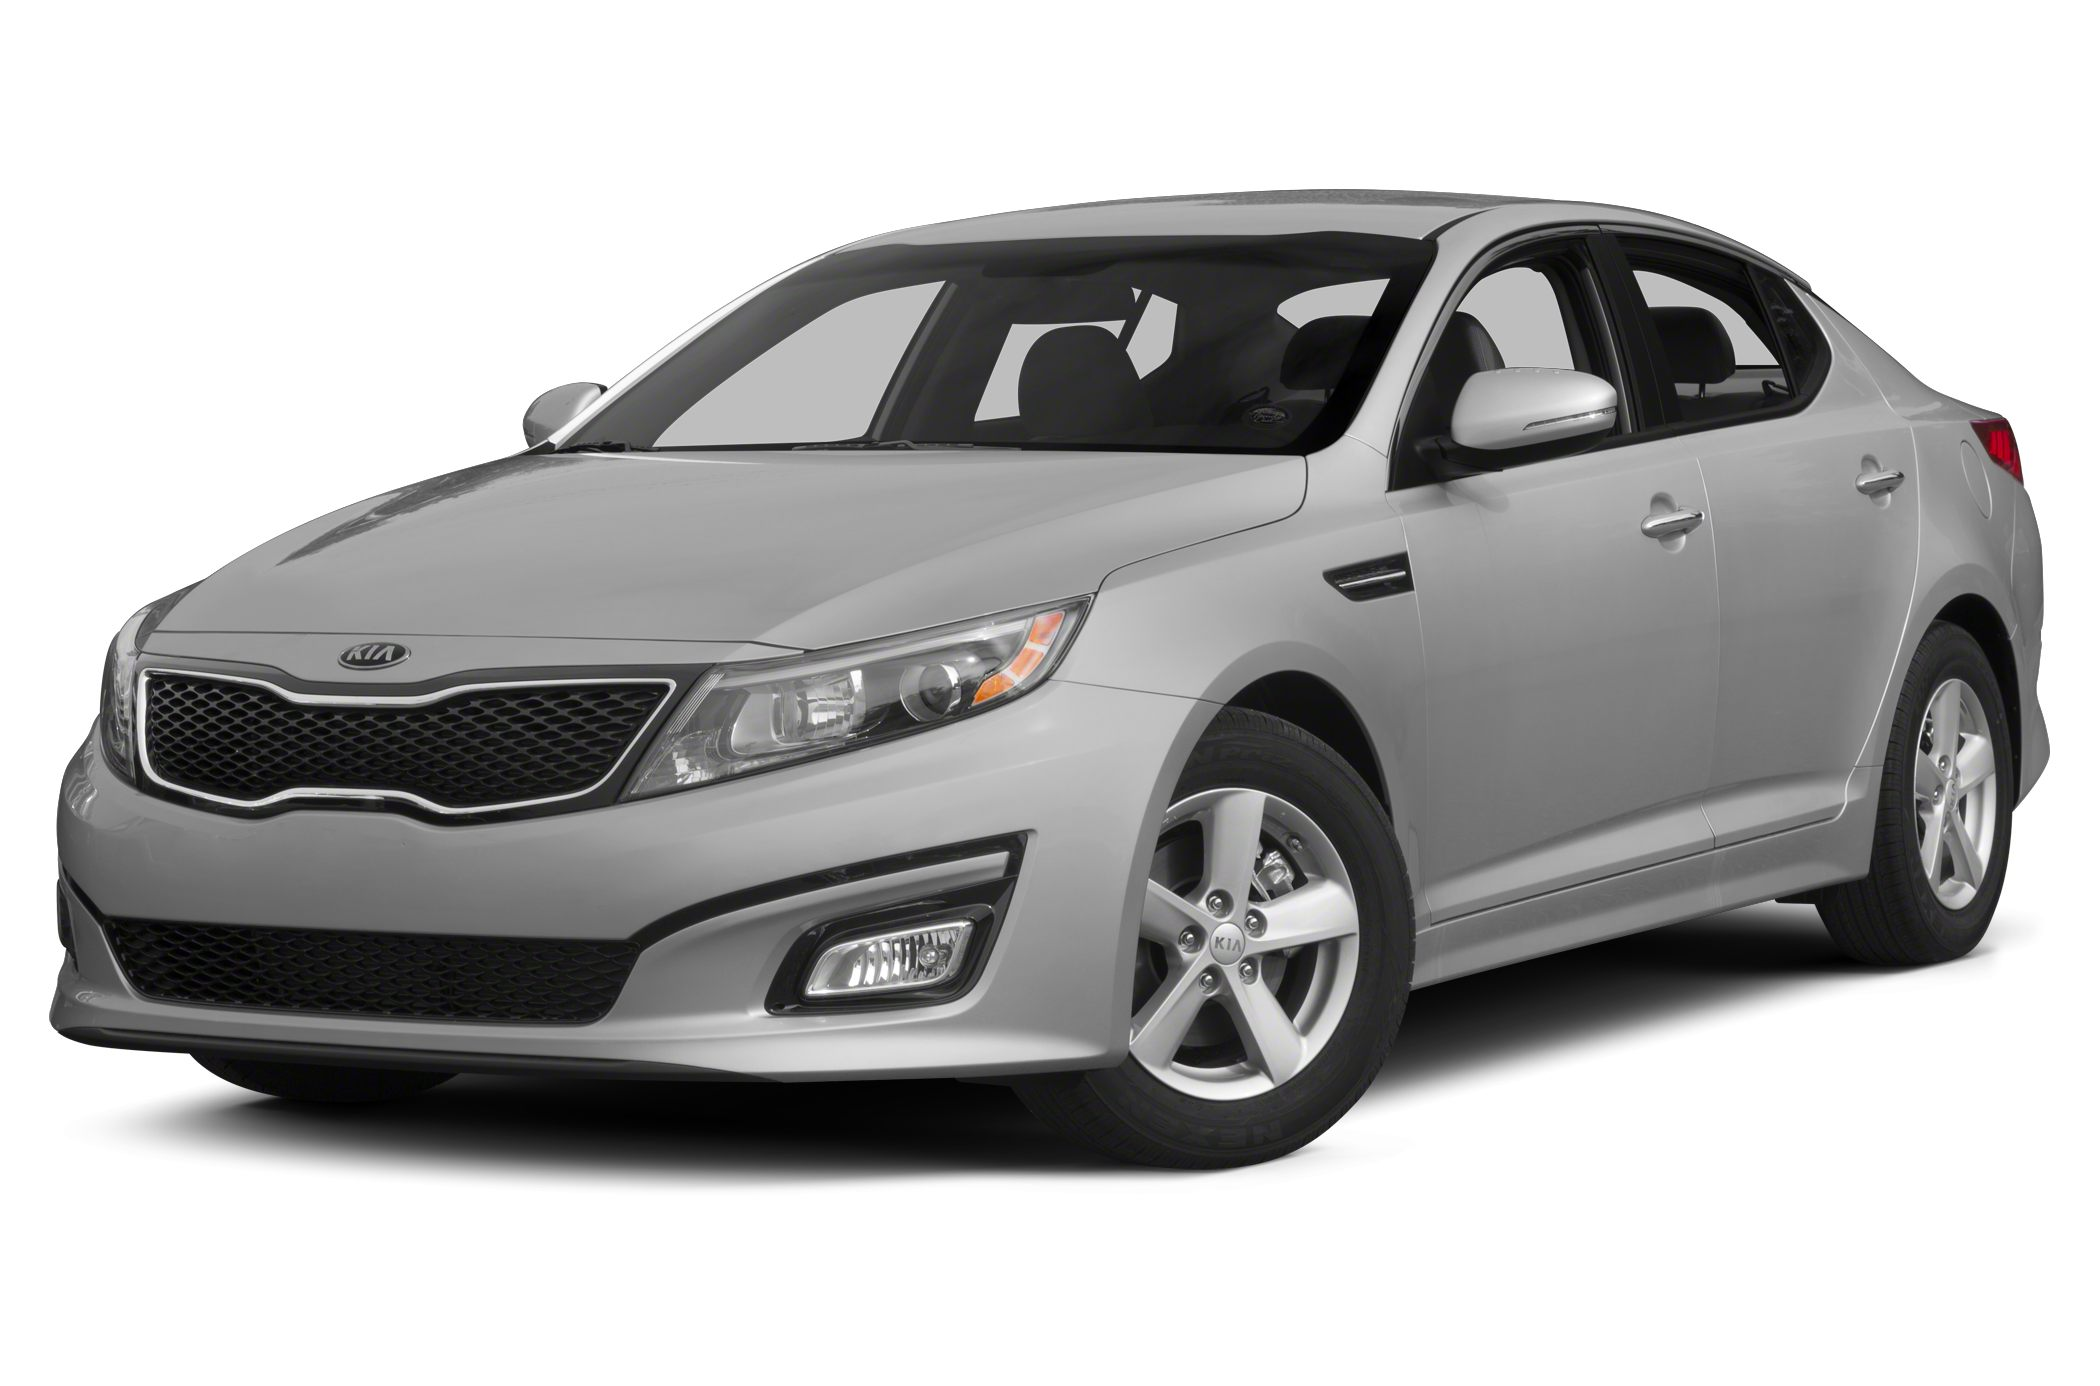 2014 Kia Optima LX Miles 21783Color Silver Stock 16AL444A VIN 5XXGM4A76EG325490